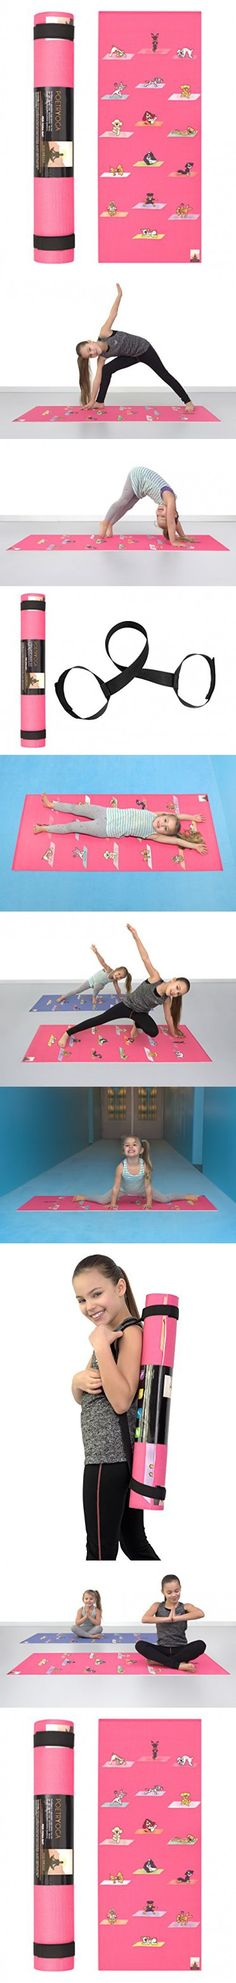 POETRYOGA - Kids Yoga Mat - with Carry Strap - 60x24 Inches 4mm - Eco-Friendly SGS Approved Non-Toxic No Phthalates or Latex - Durable - Non-Slip - Multi Purpose - Yoga Dogs Poses (Magenta)